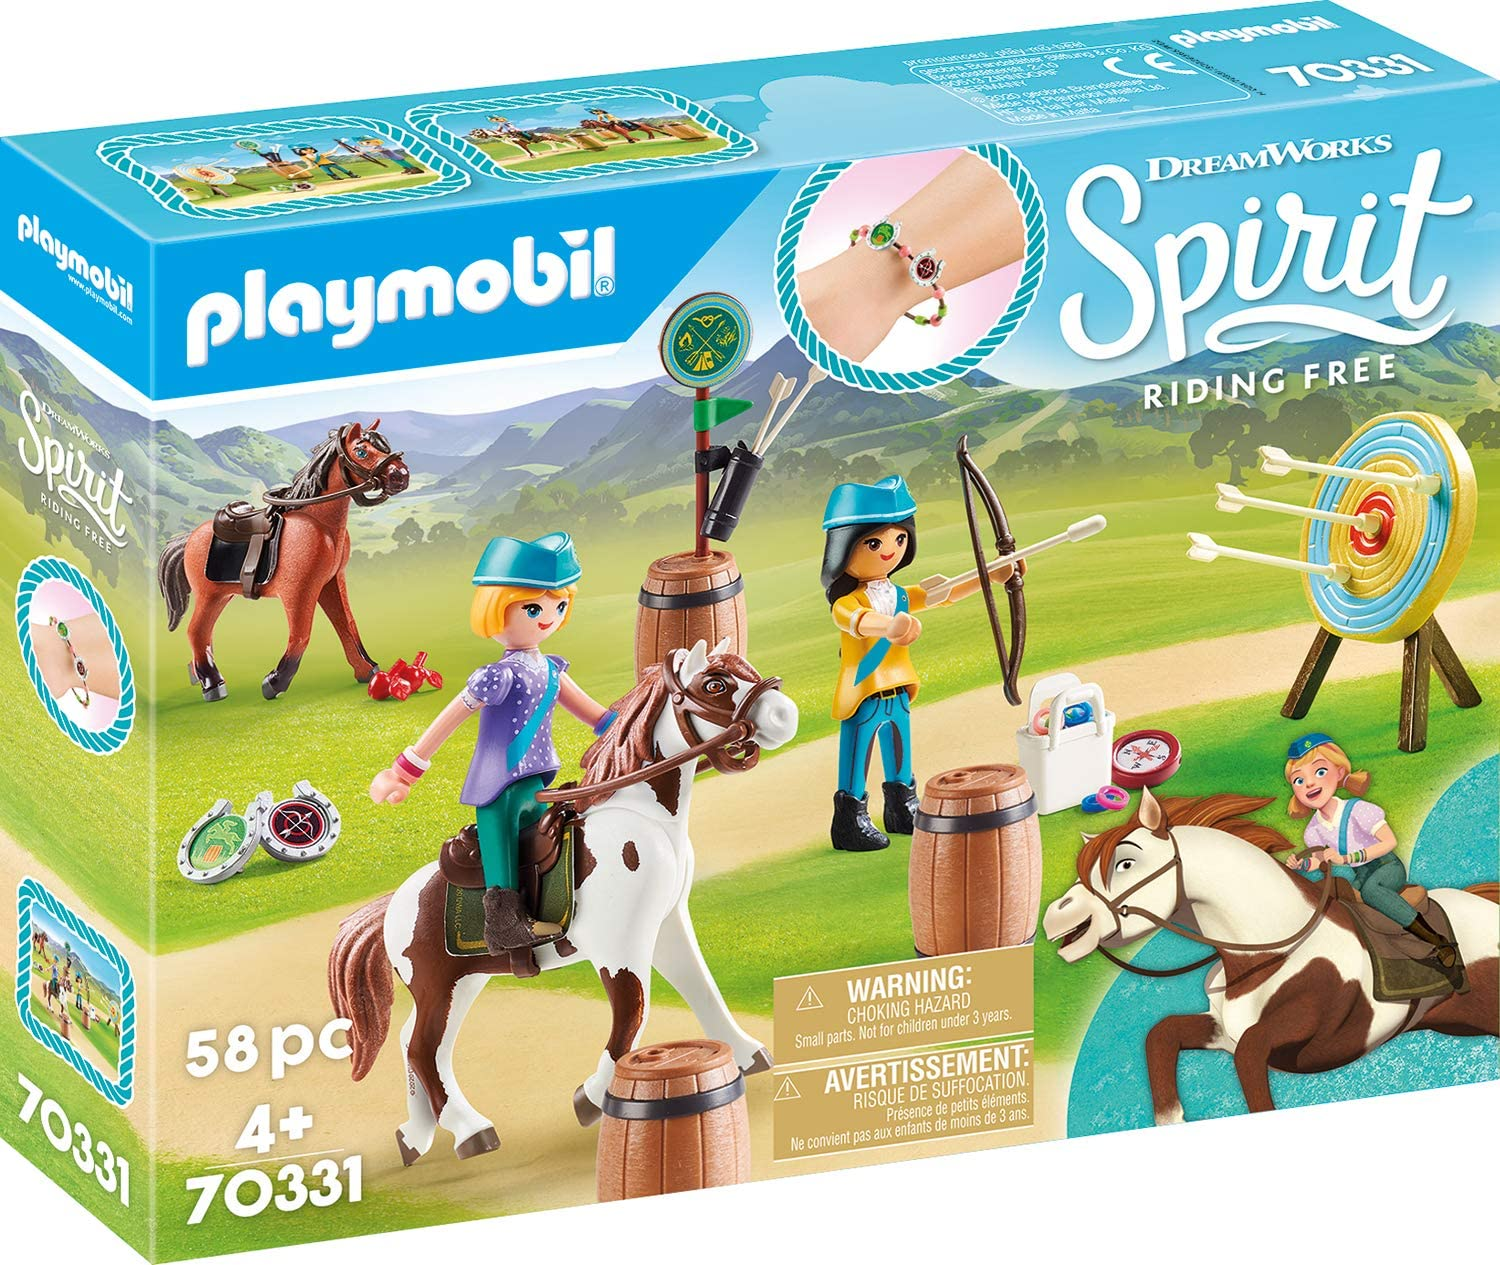 Playmobil DreamWorks Set amazon